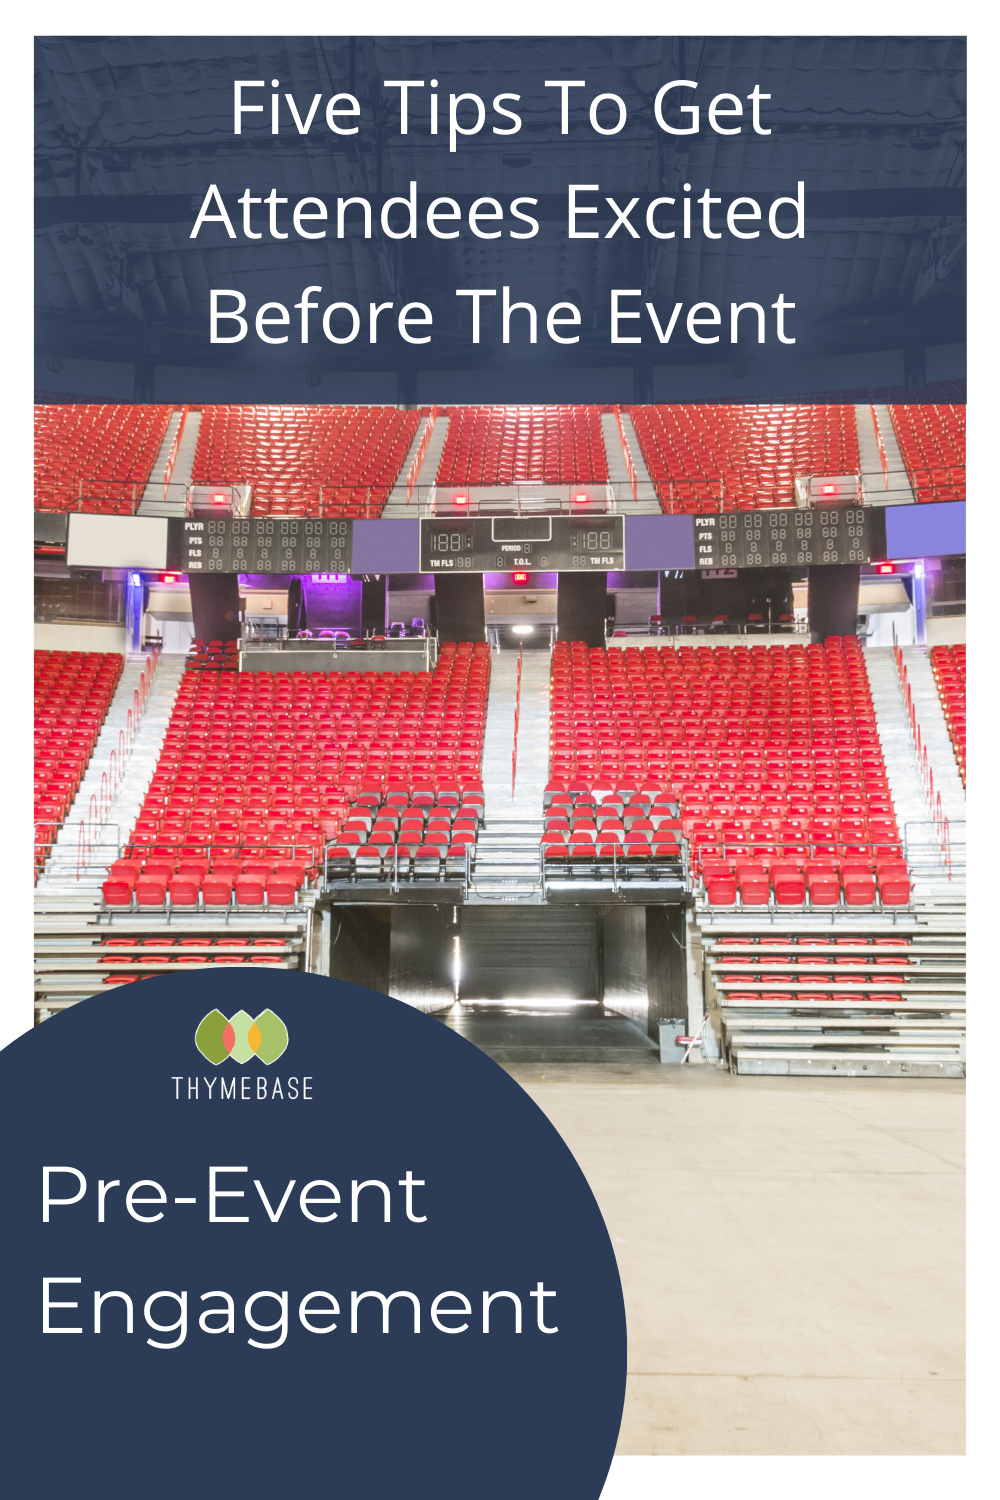 Pre-event engagement guarantees a successful event. Just remember, good event marketing begins long before the first guest arrives.  . . . . #eventtech #eventtechnology #eventprofs #event #eventdesign #eventmanagement #eventplanner #eventplanners #eventplanning #events #meetings #partyplanner #weddingplanner #corporateevents #thymebase